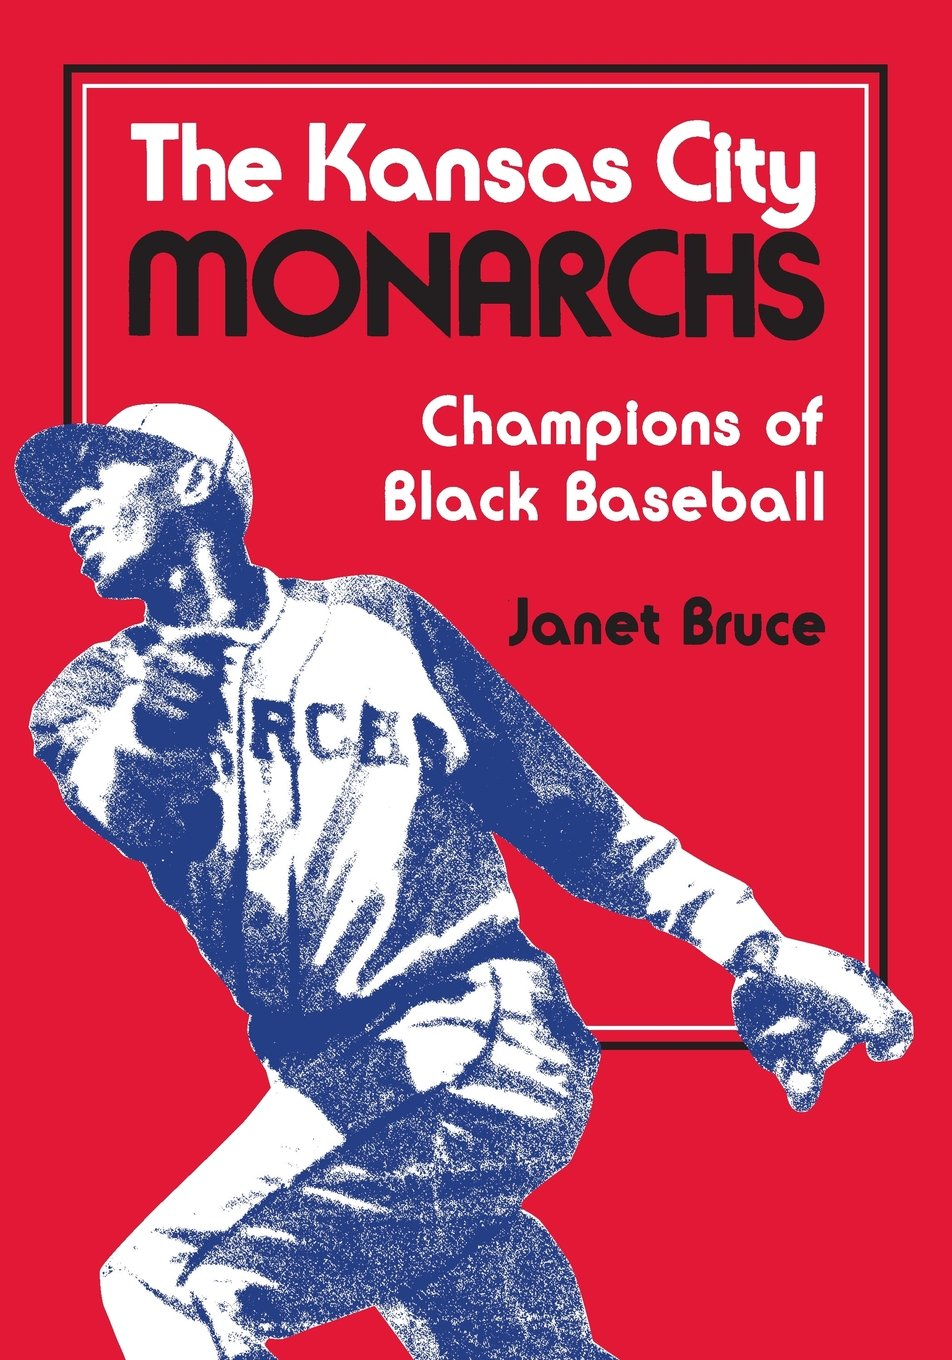 Janet Bruce, The Kansas City Monarchs: Champions of Black Baseball-Click the link below for more information about this book